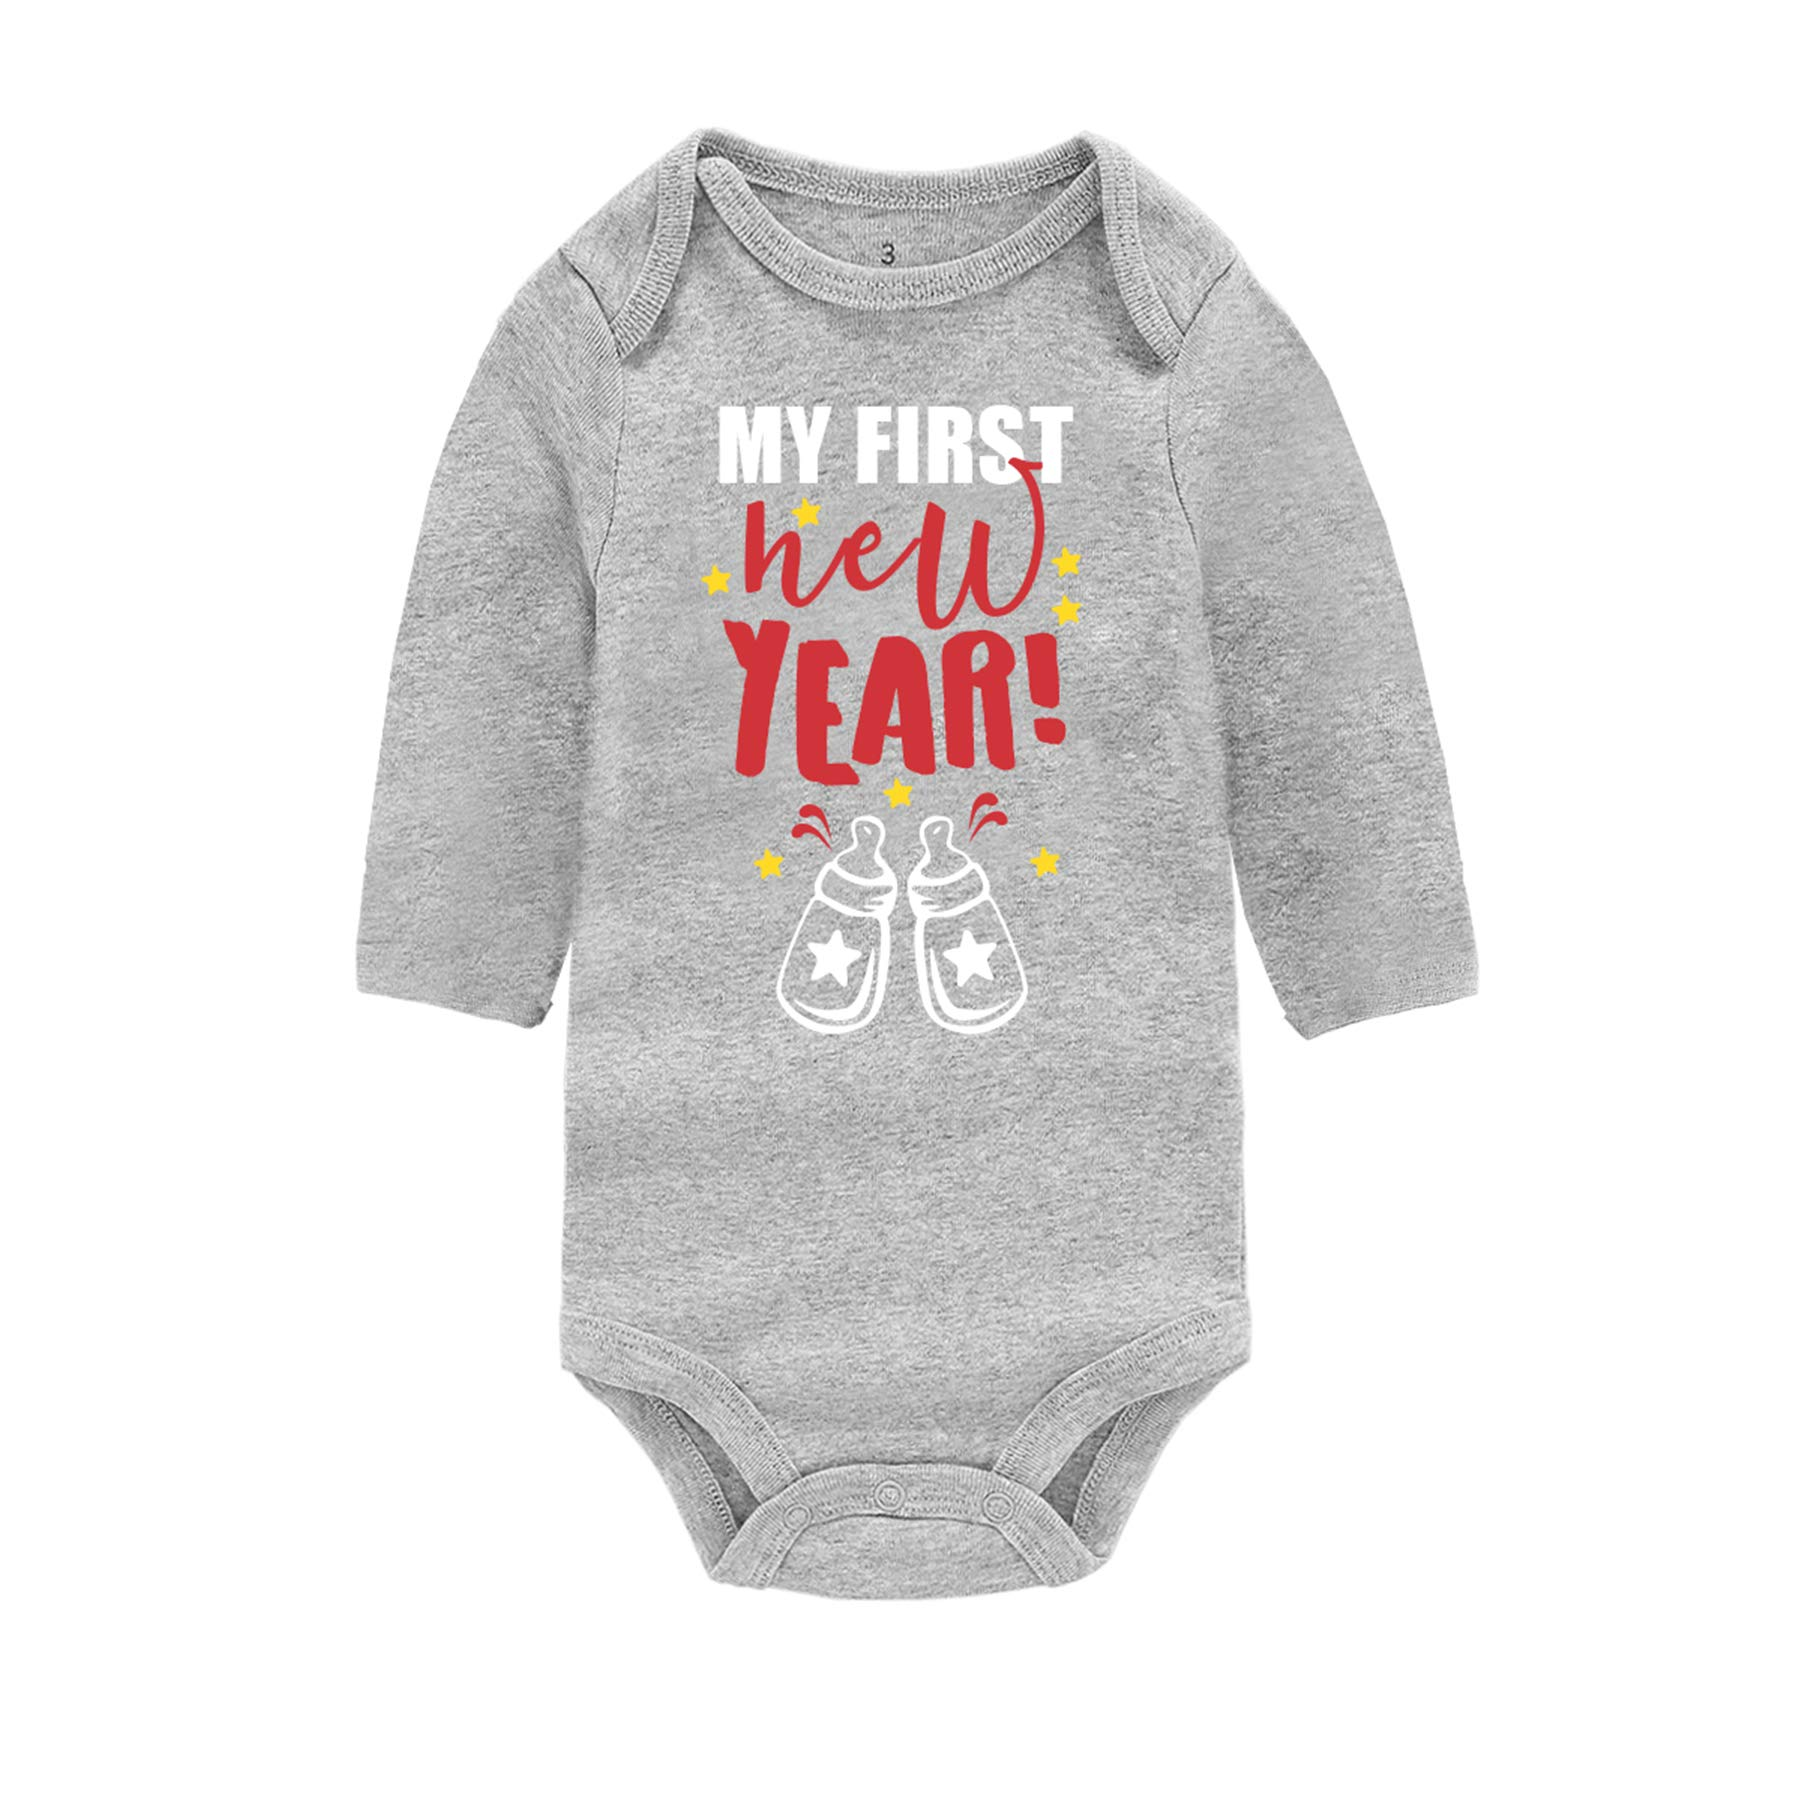 Infant Bodysuit My First New Year Romper Outfit Newborn Baby Long Sleeve One-Piece Jumpsuit